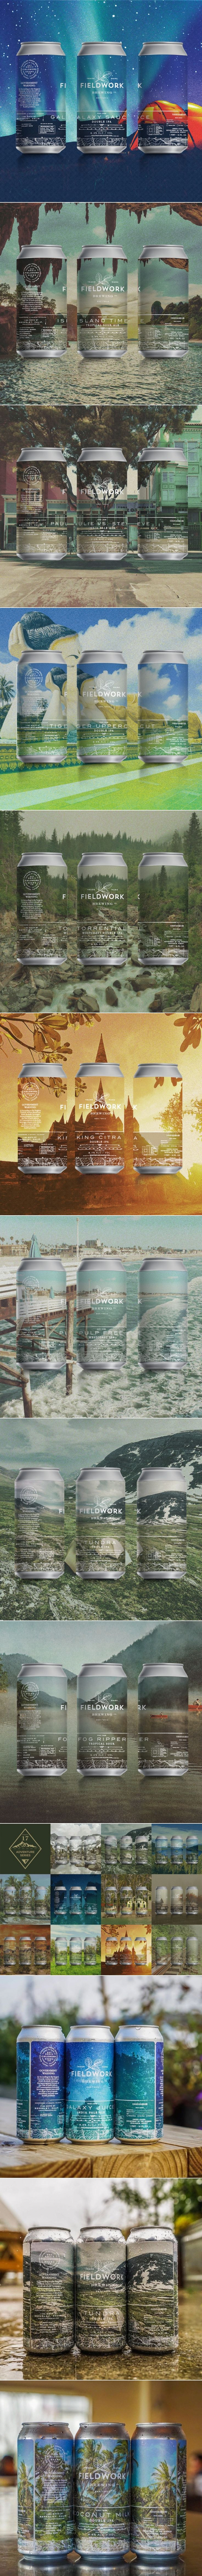 Around the World in Ten Months with Fieldwork Brewing Company — The Dieline | Packaging & Branding Design & Innovation News